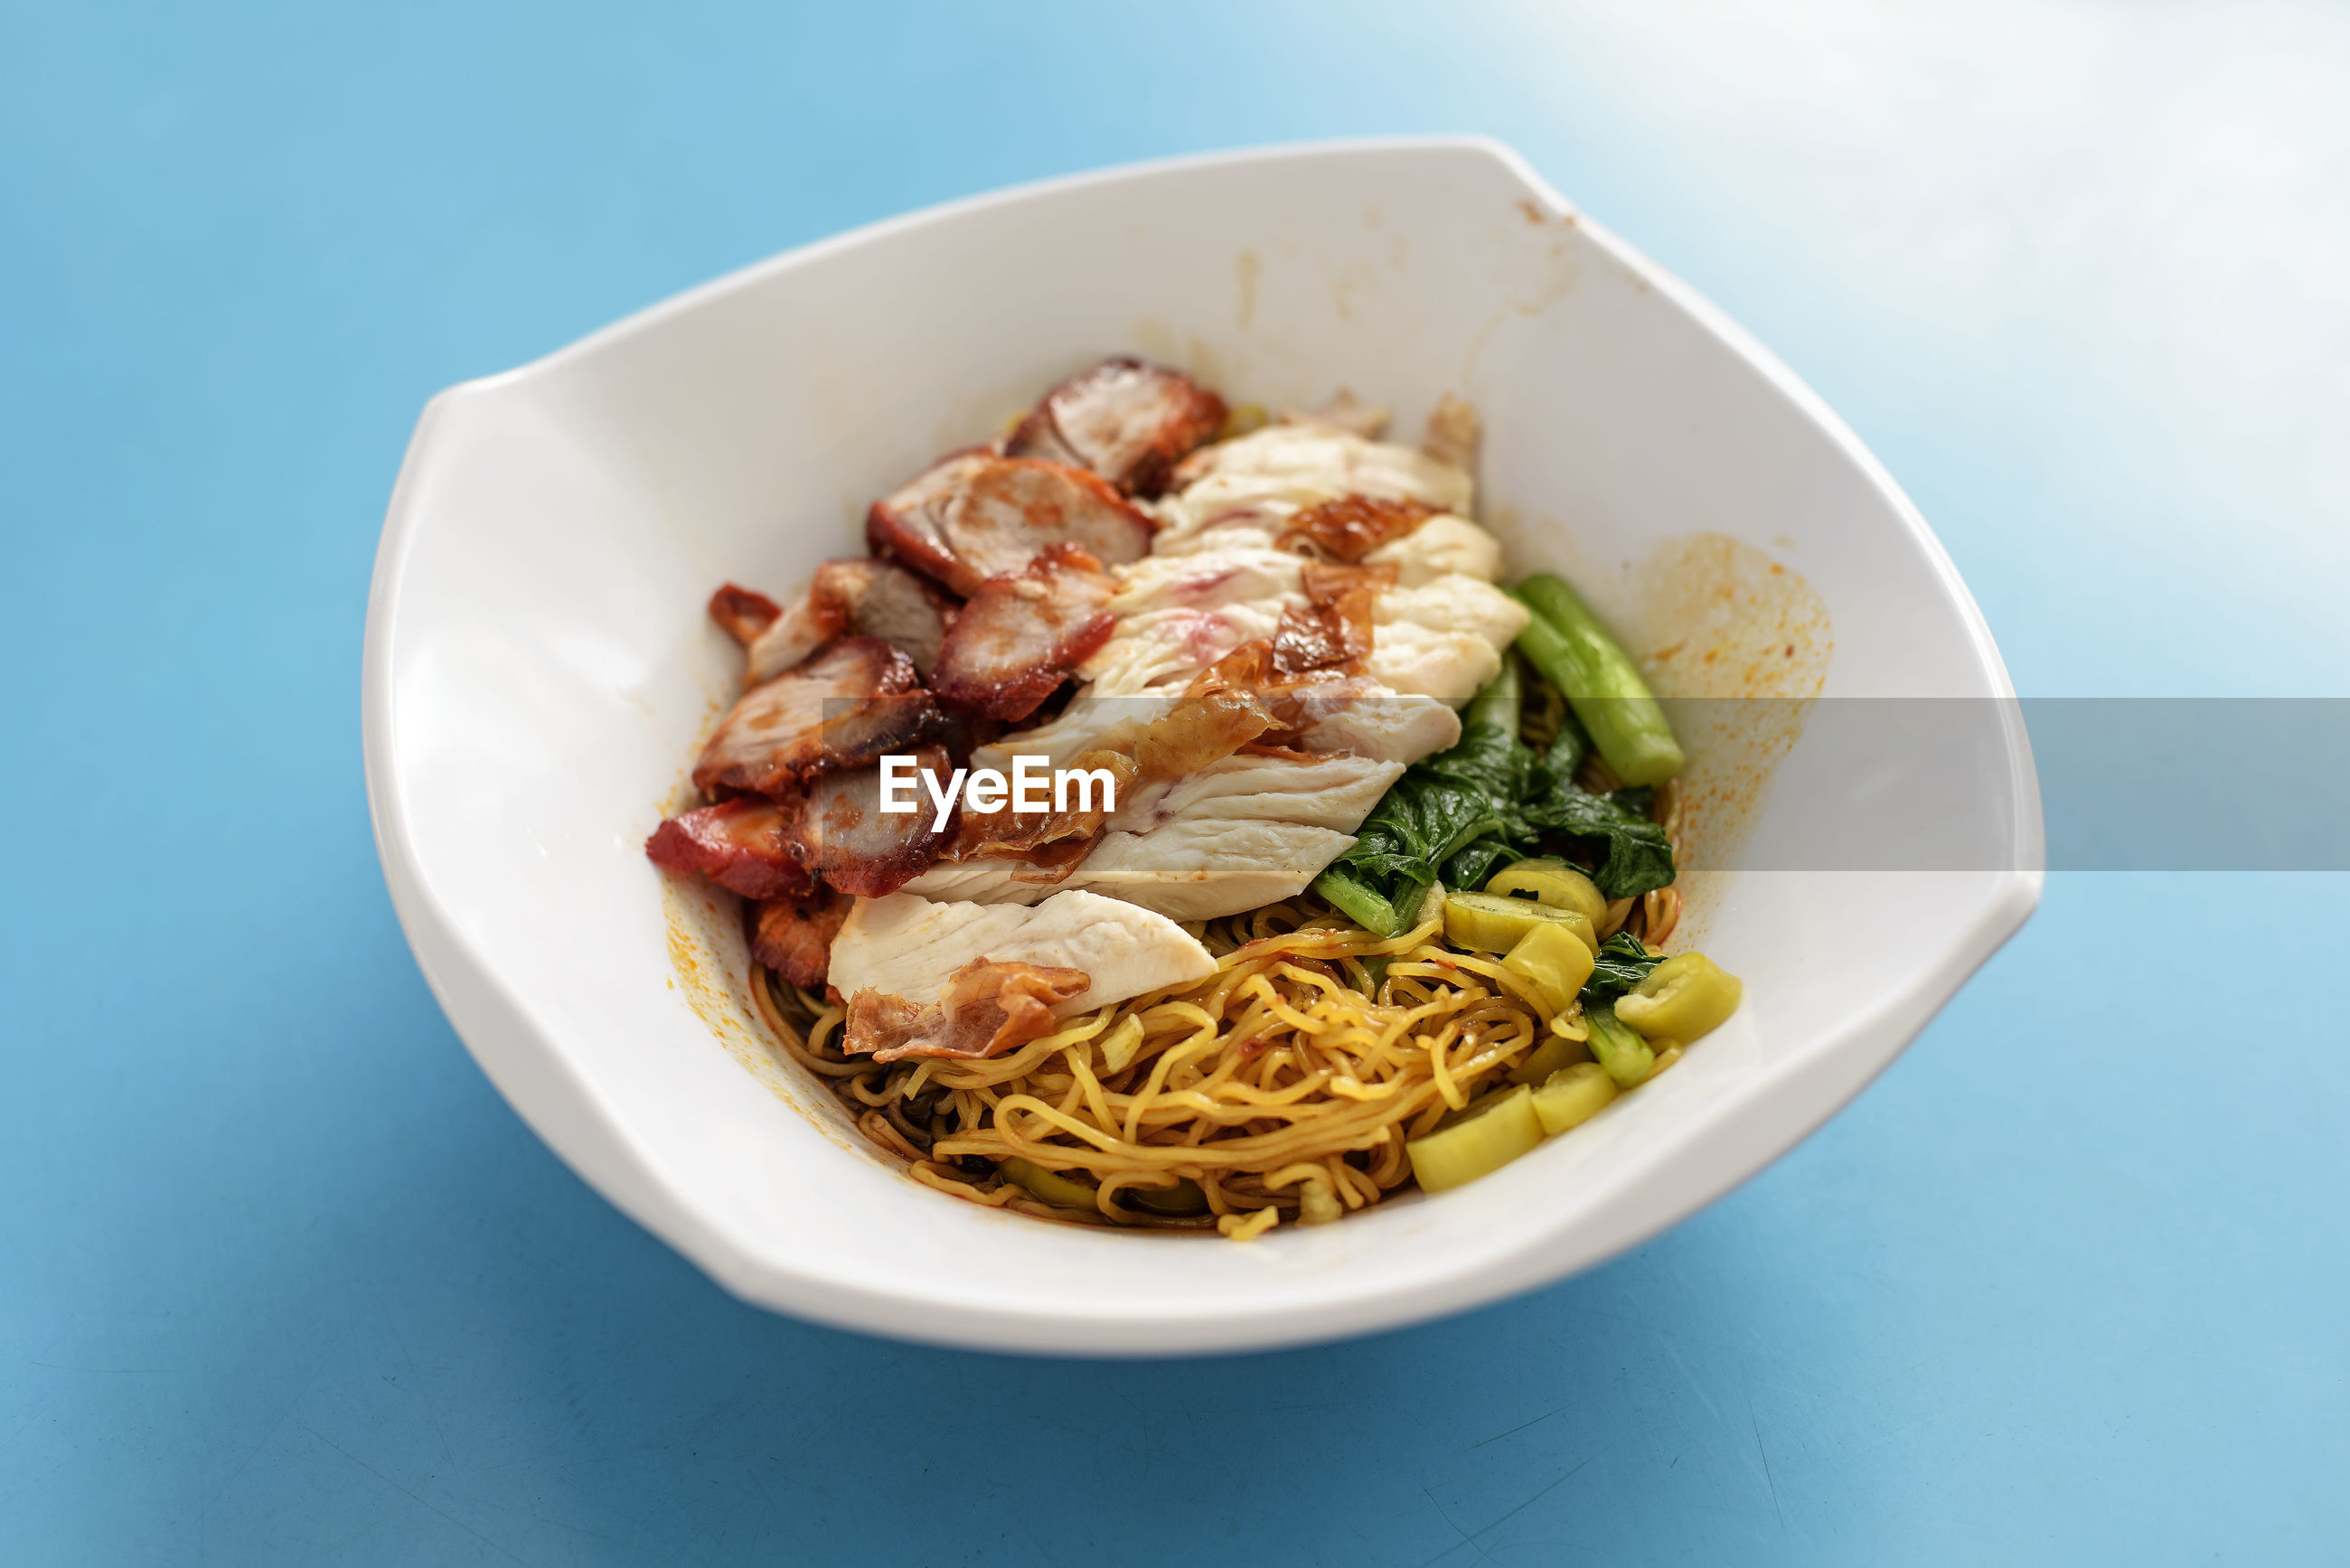 High angle view of food in bowl over blue background